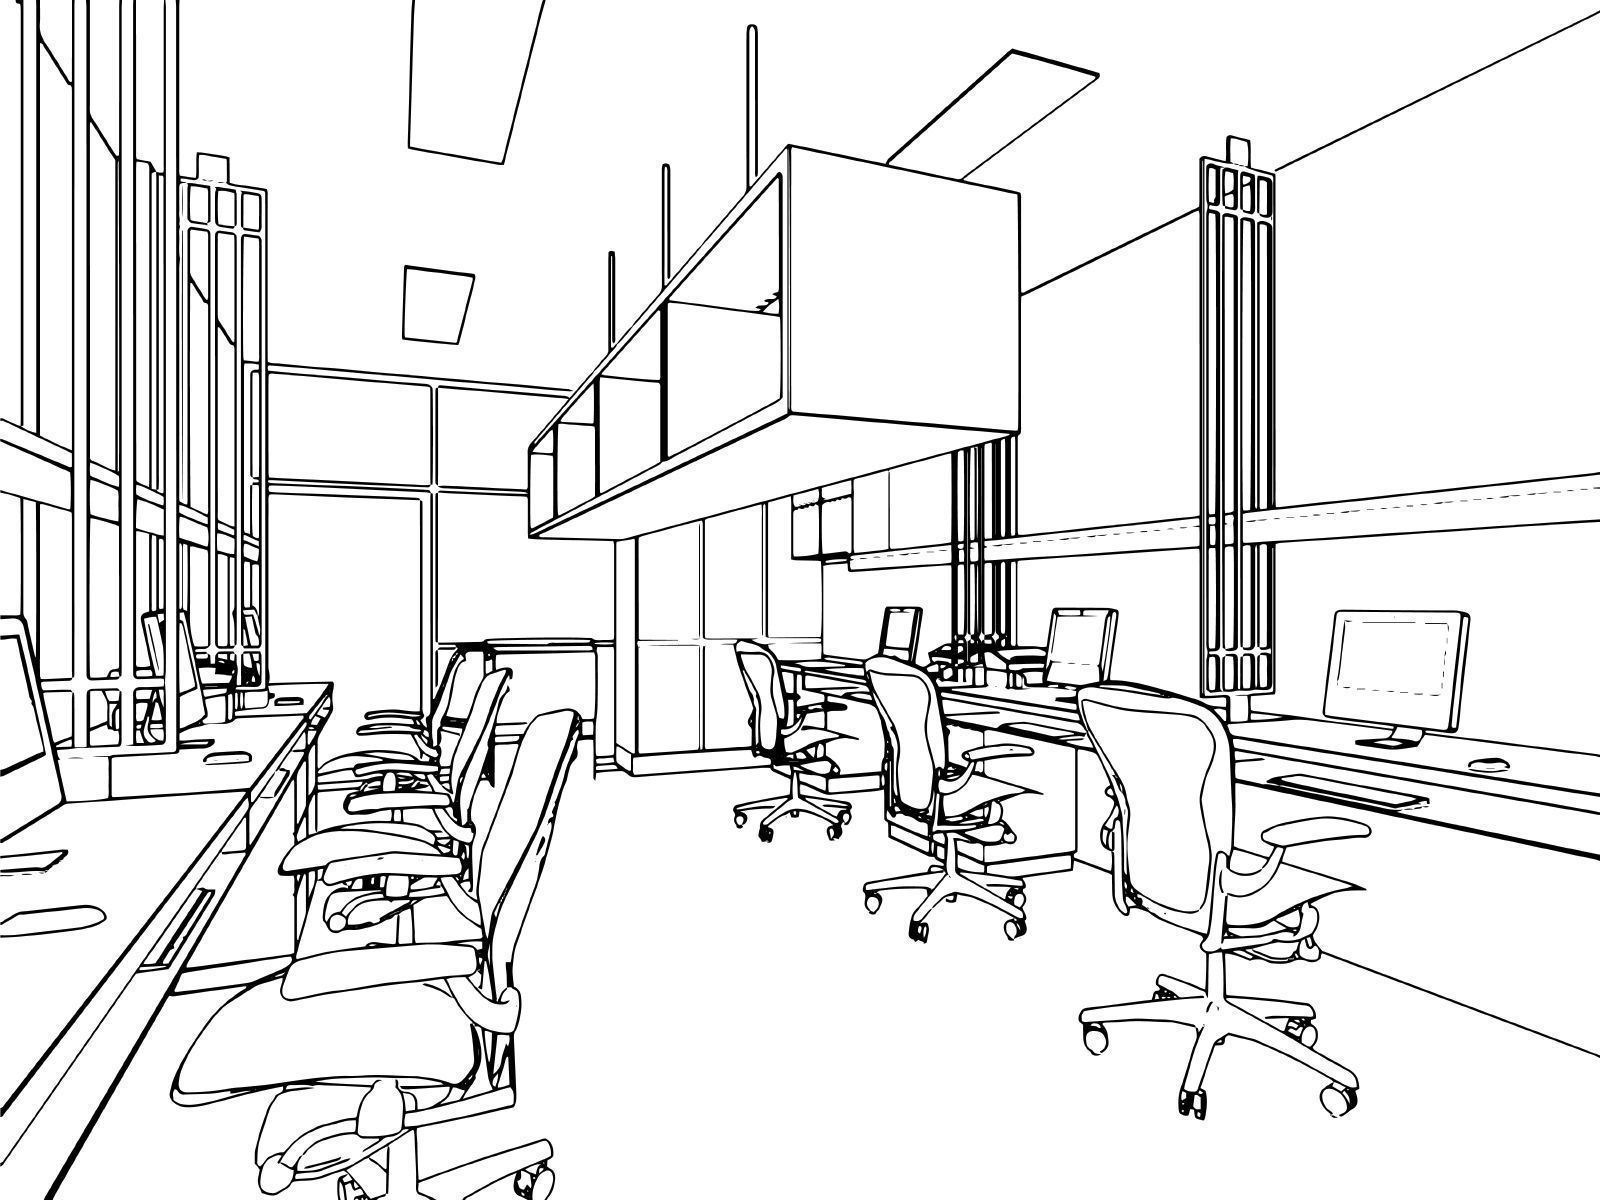 Open Office Drawing Lines : Offices in madrid ofimad reforma alquiler y venta de